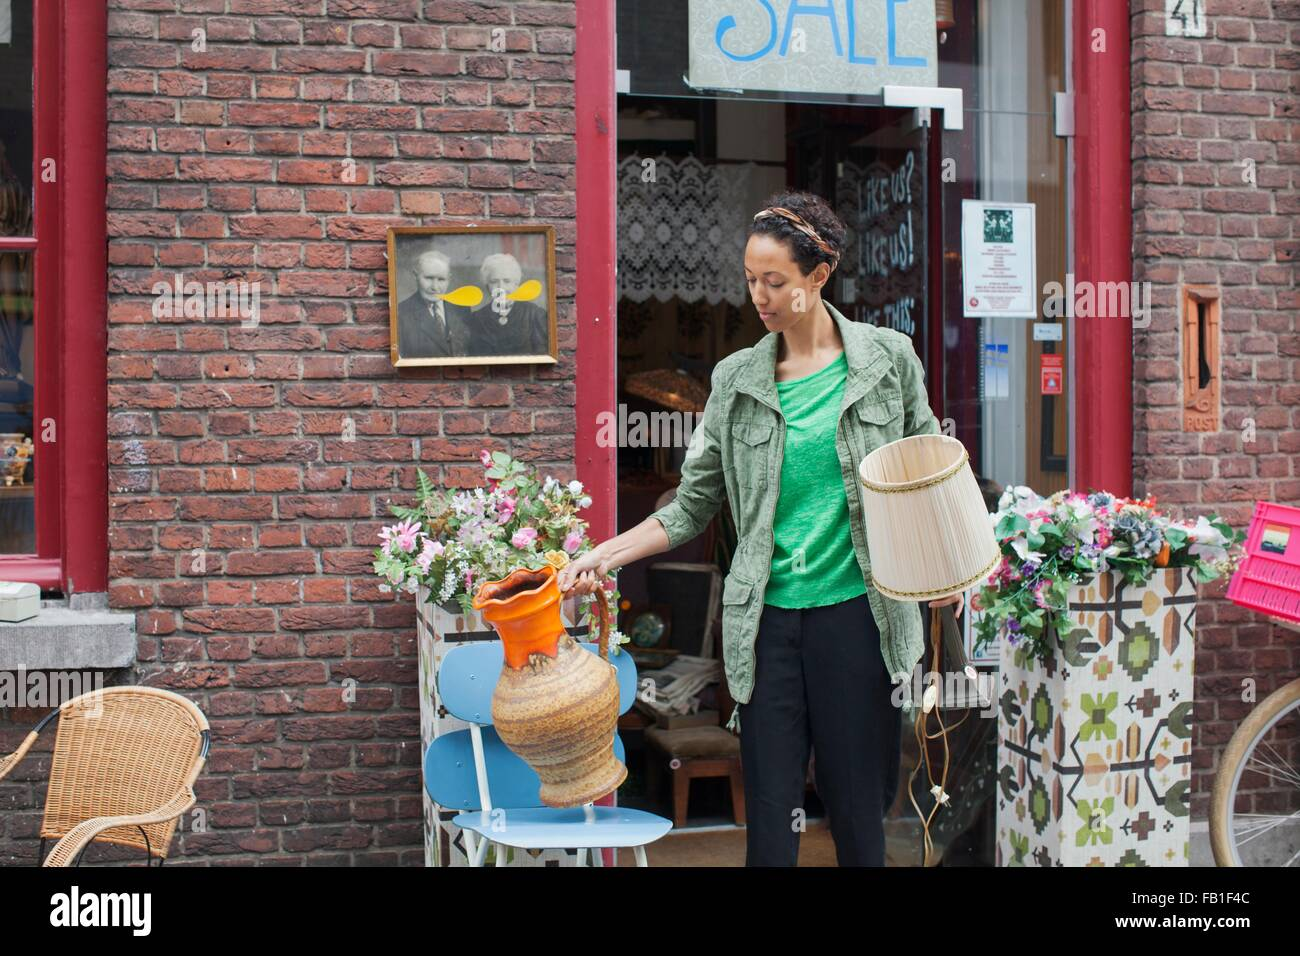 Female customer with jug and lamp outside vintage shop - Stock Image